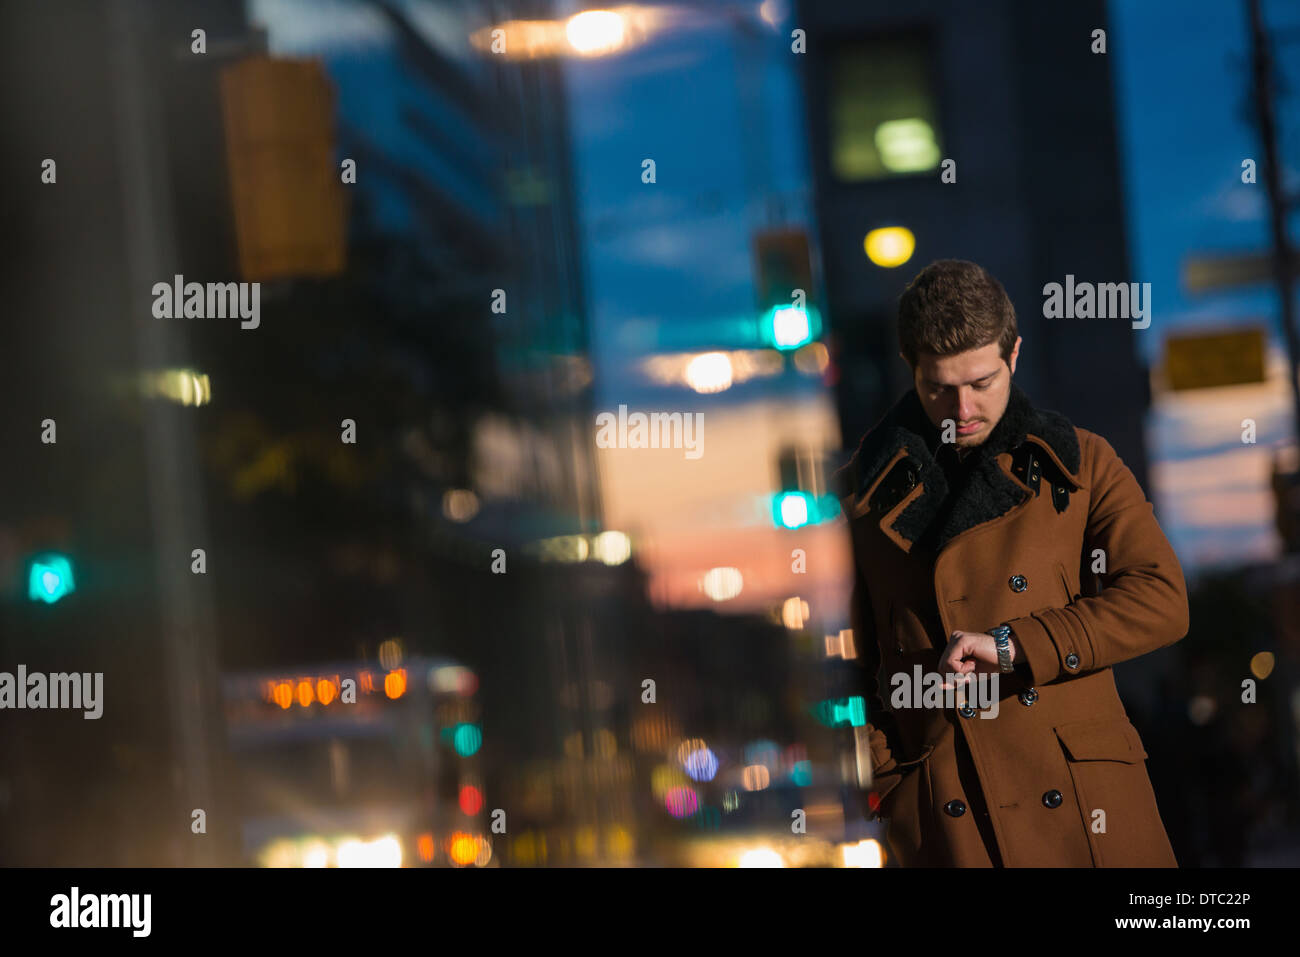 Young man waiting on street looking at watch, Toronto, Ontario, Canada - Stock Image